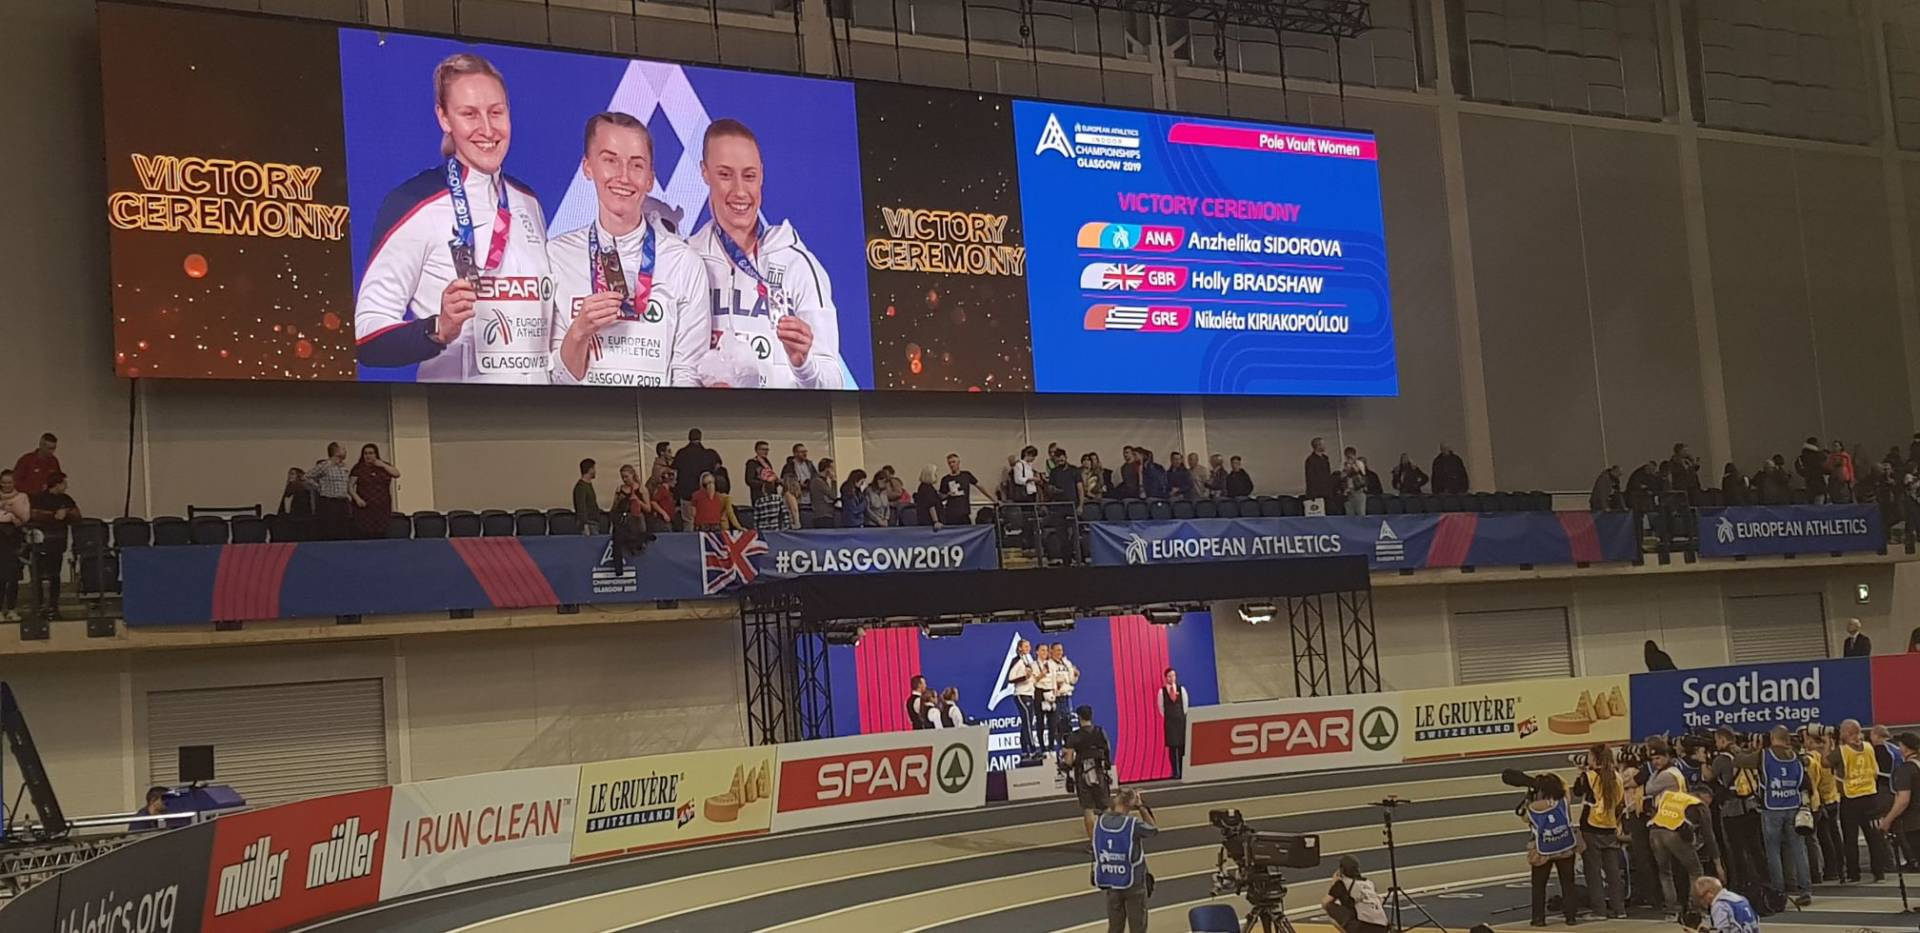 Holly is the Silver Medalist at the European Track & Field Indoor Championships